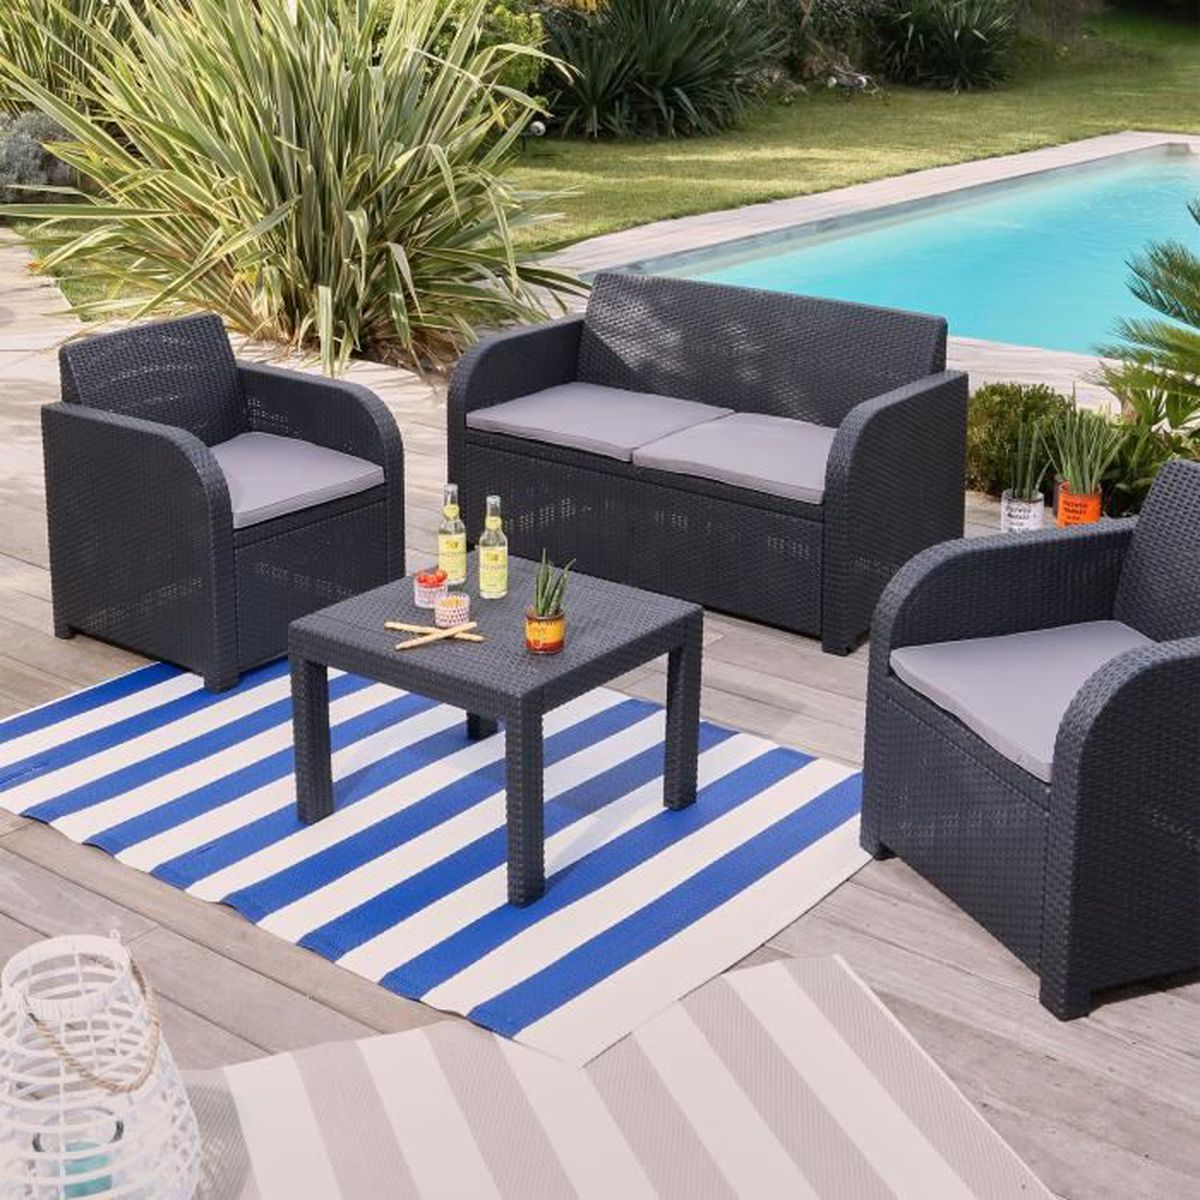 georgia salon de jardin gris anthracite finition rotin tress 4 places achat vente salon. Black Bedroom Furniture Sets. Home Design Ideas